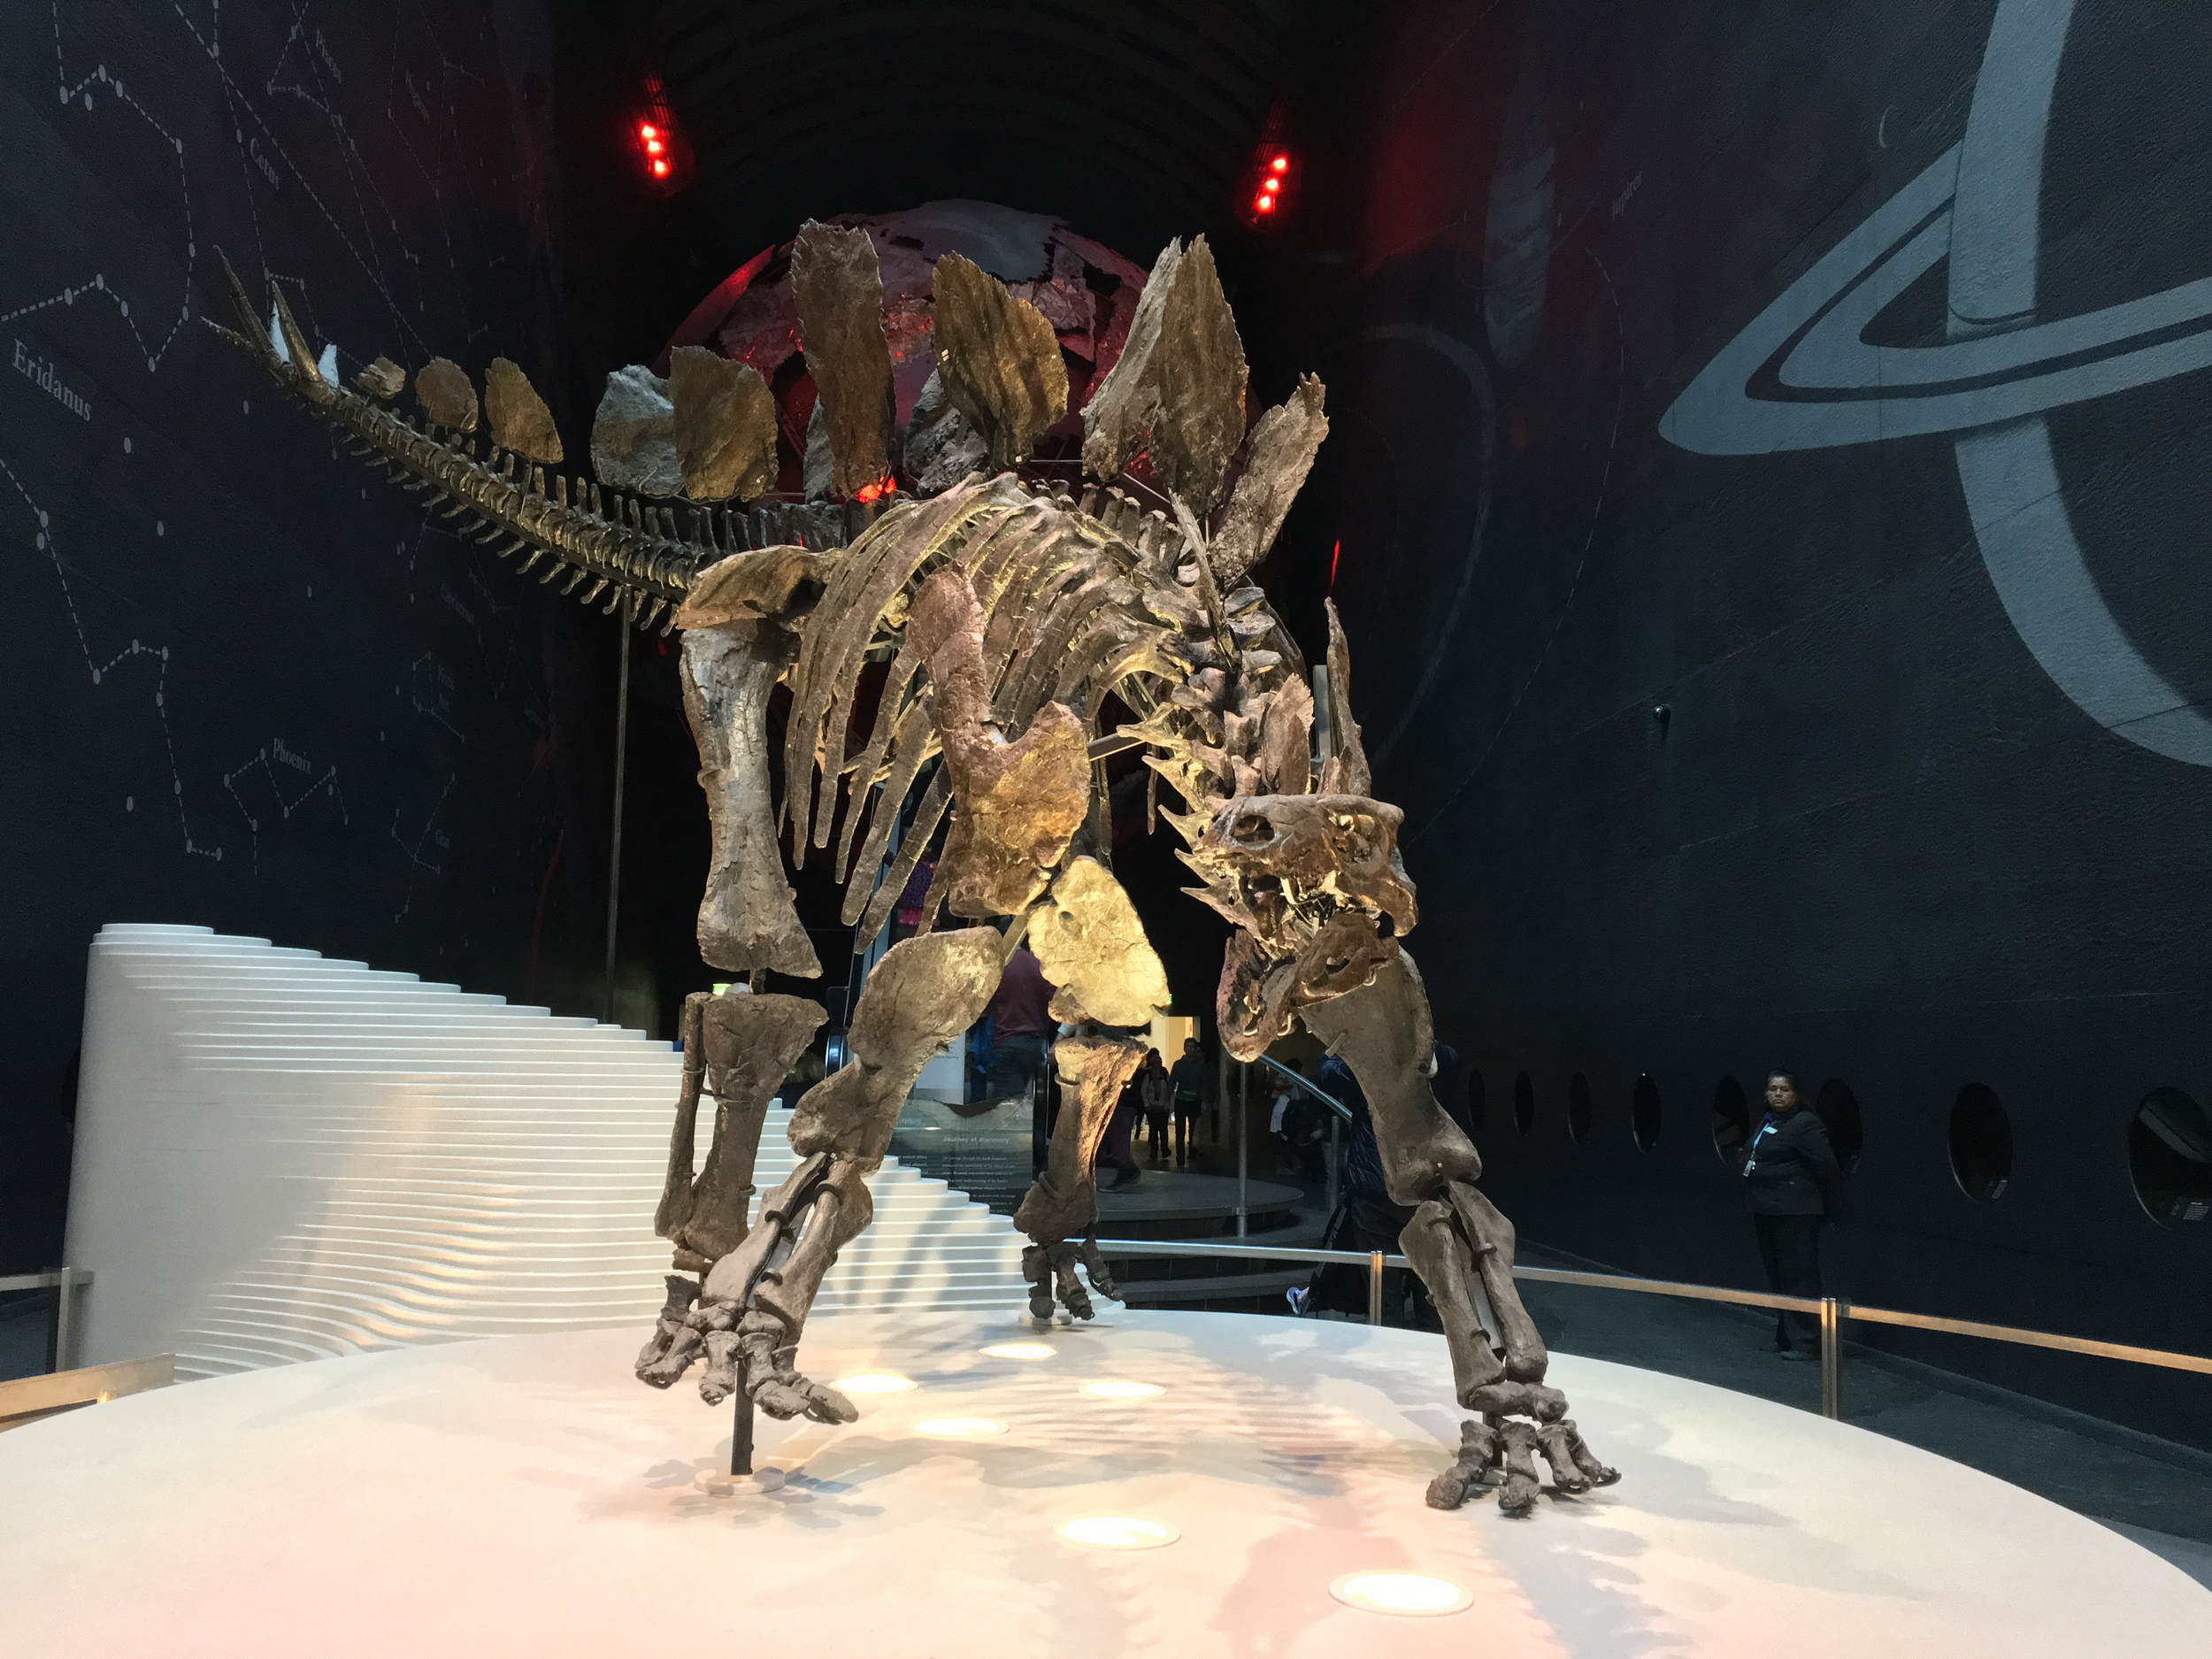 The new Stegosaurus skeleton at the NHM, the majority of which is real rather than a reproduction - spectacular!